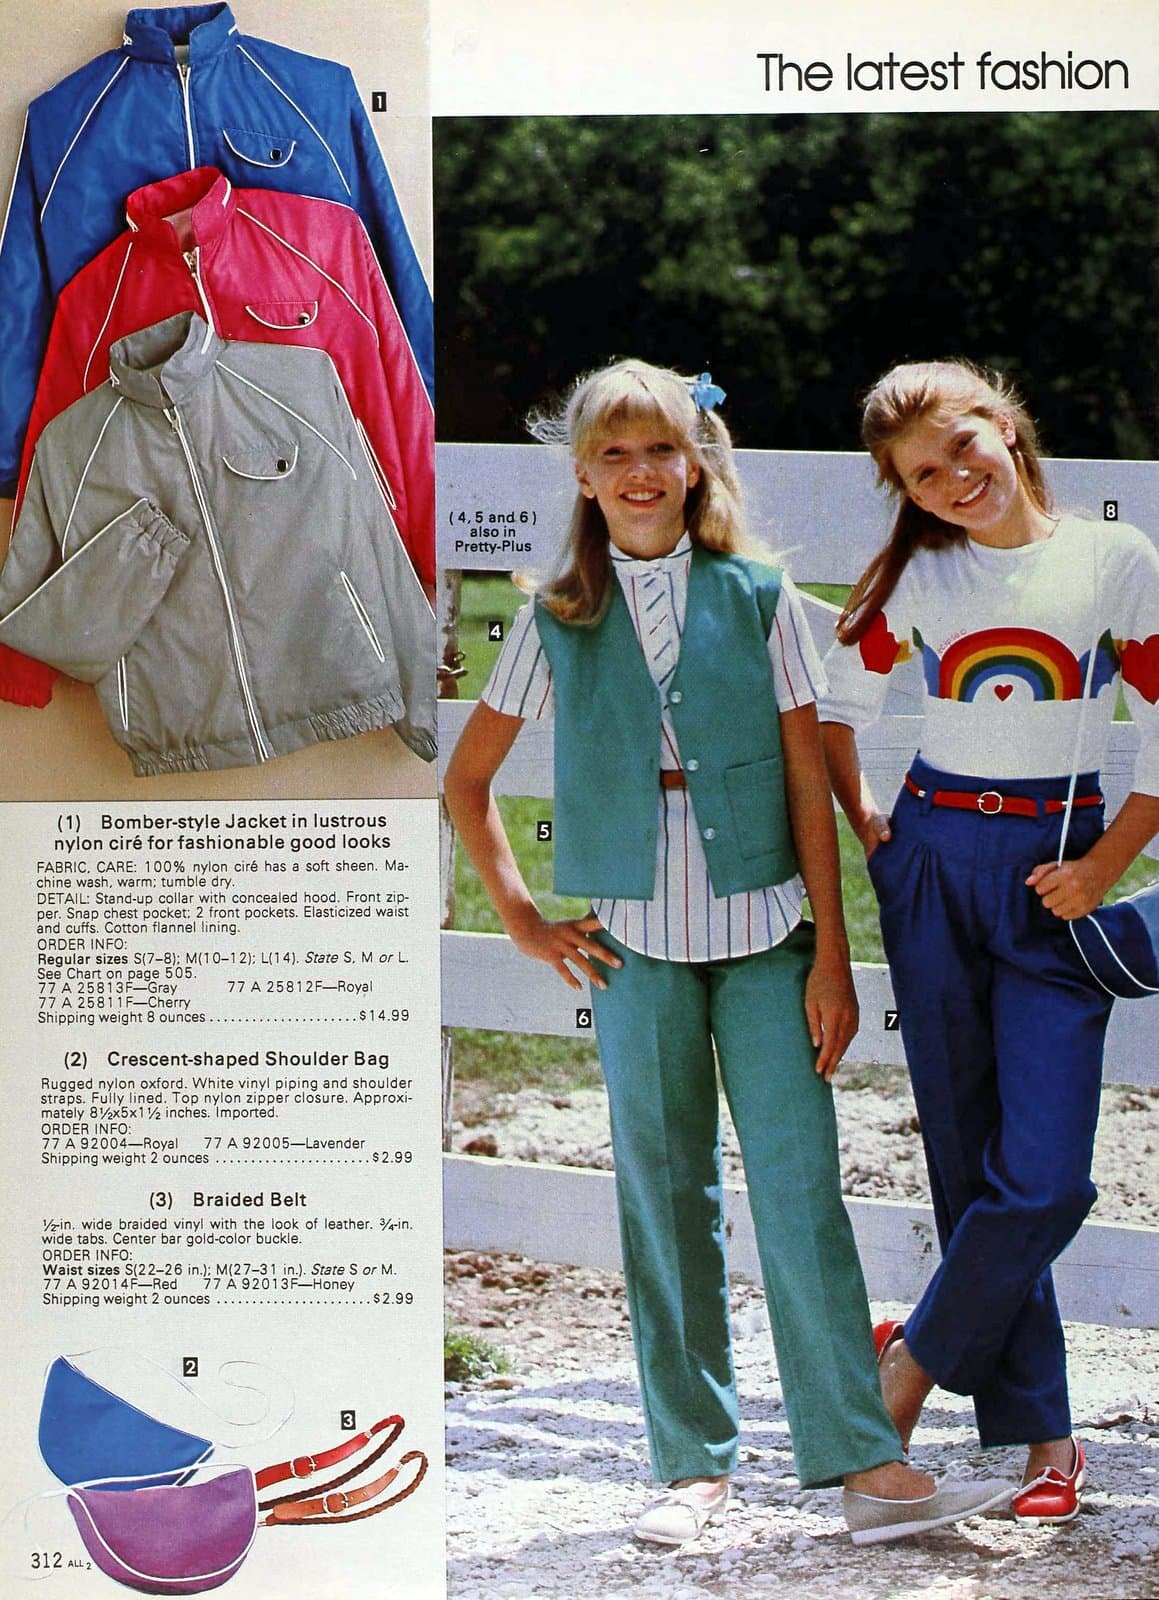 Latest fashions for girls and juniors from 1983